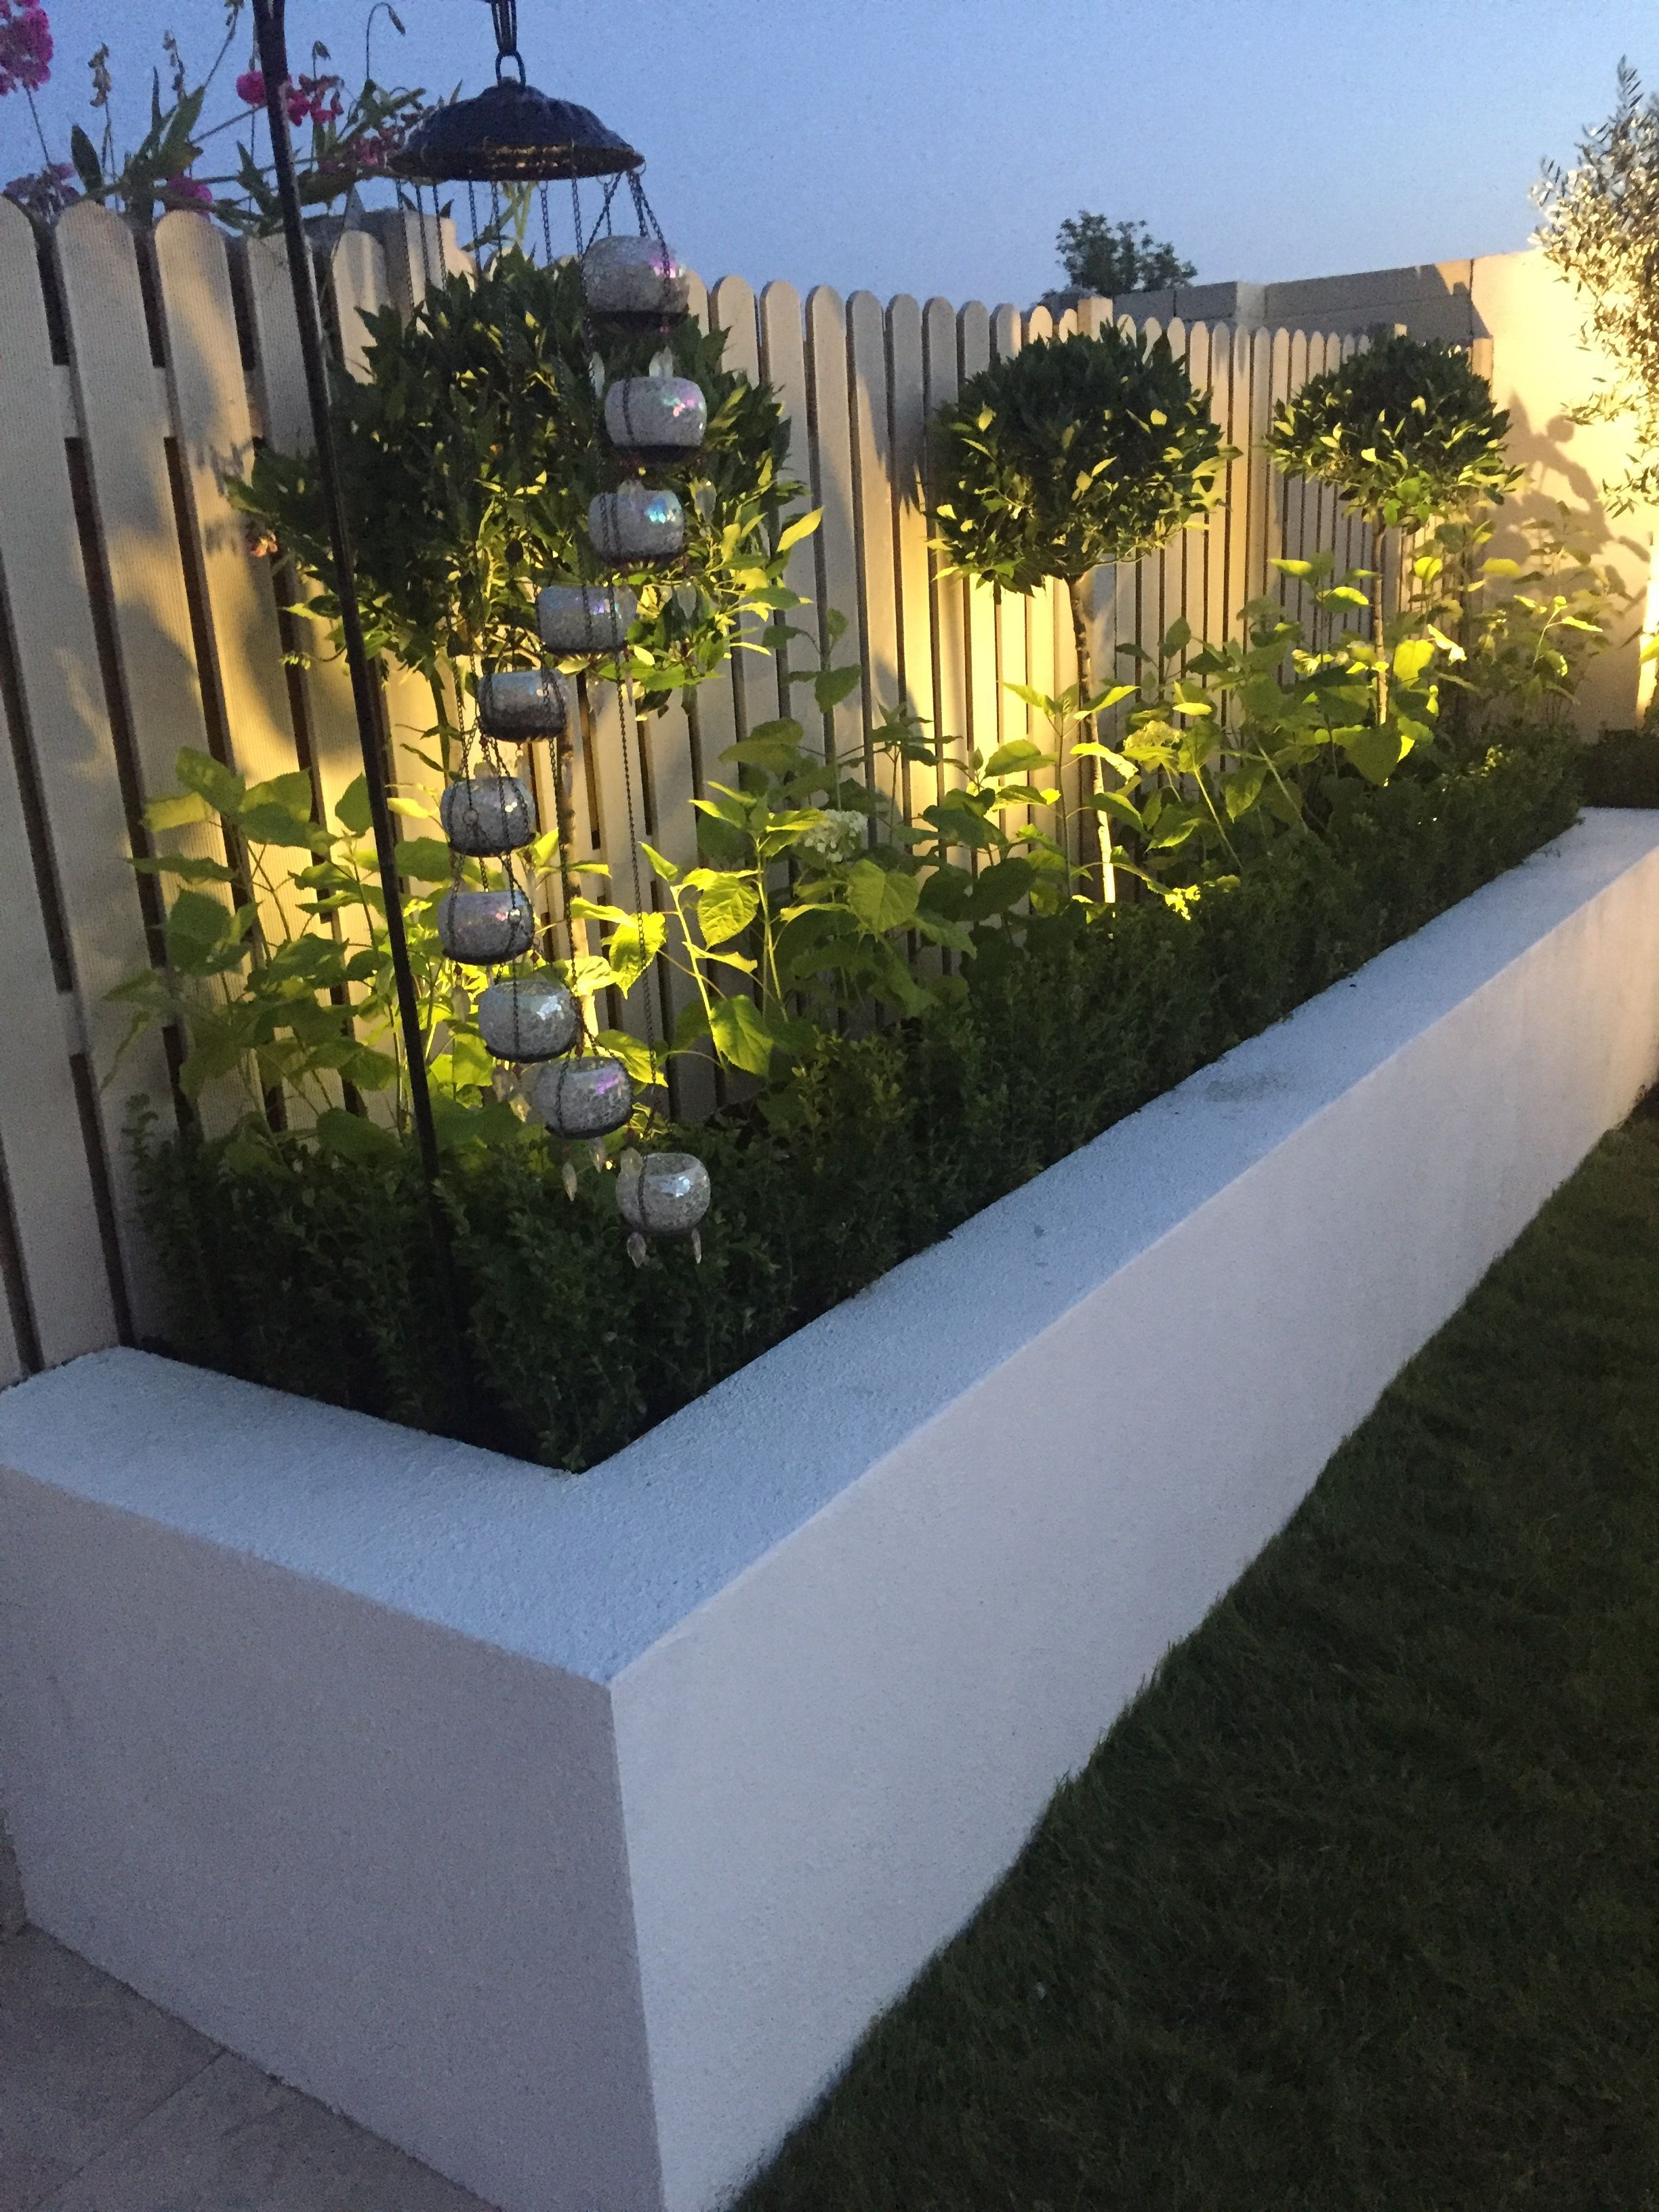 Love The Trees And Lighting In The Raised Beds Backyard Landscaping Designs Garden Architecture Back Garden Design Backyard landscaping ideas with raised beds